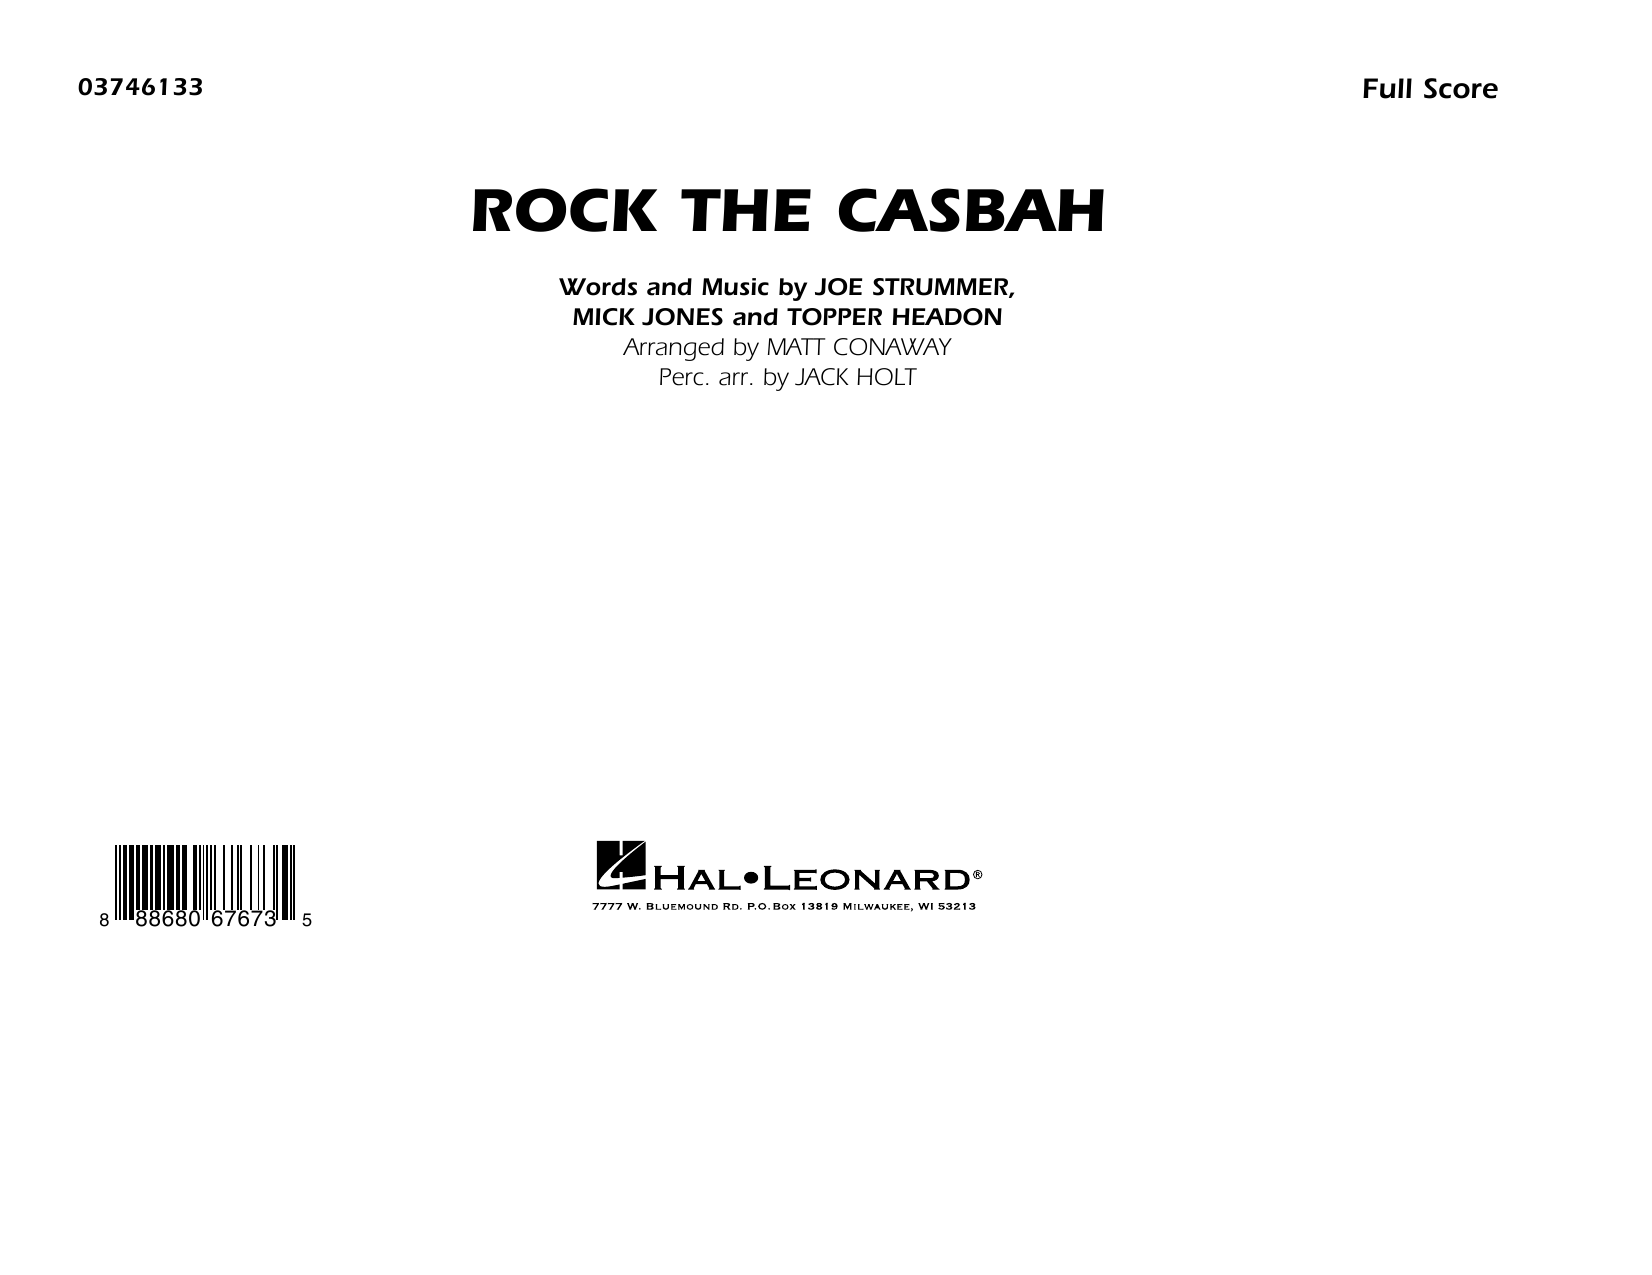 Rock the Casbah (COMPLETE) sheet music for marching band by The Clash, Matt Conaway and Mick Jones. Score Image Preview.